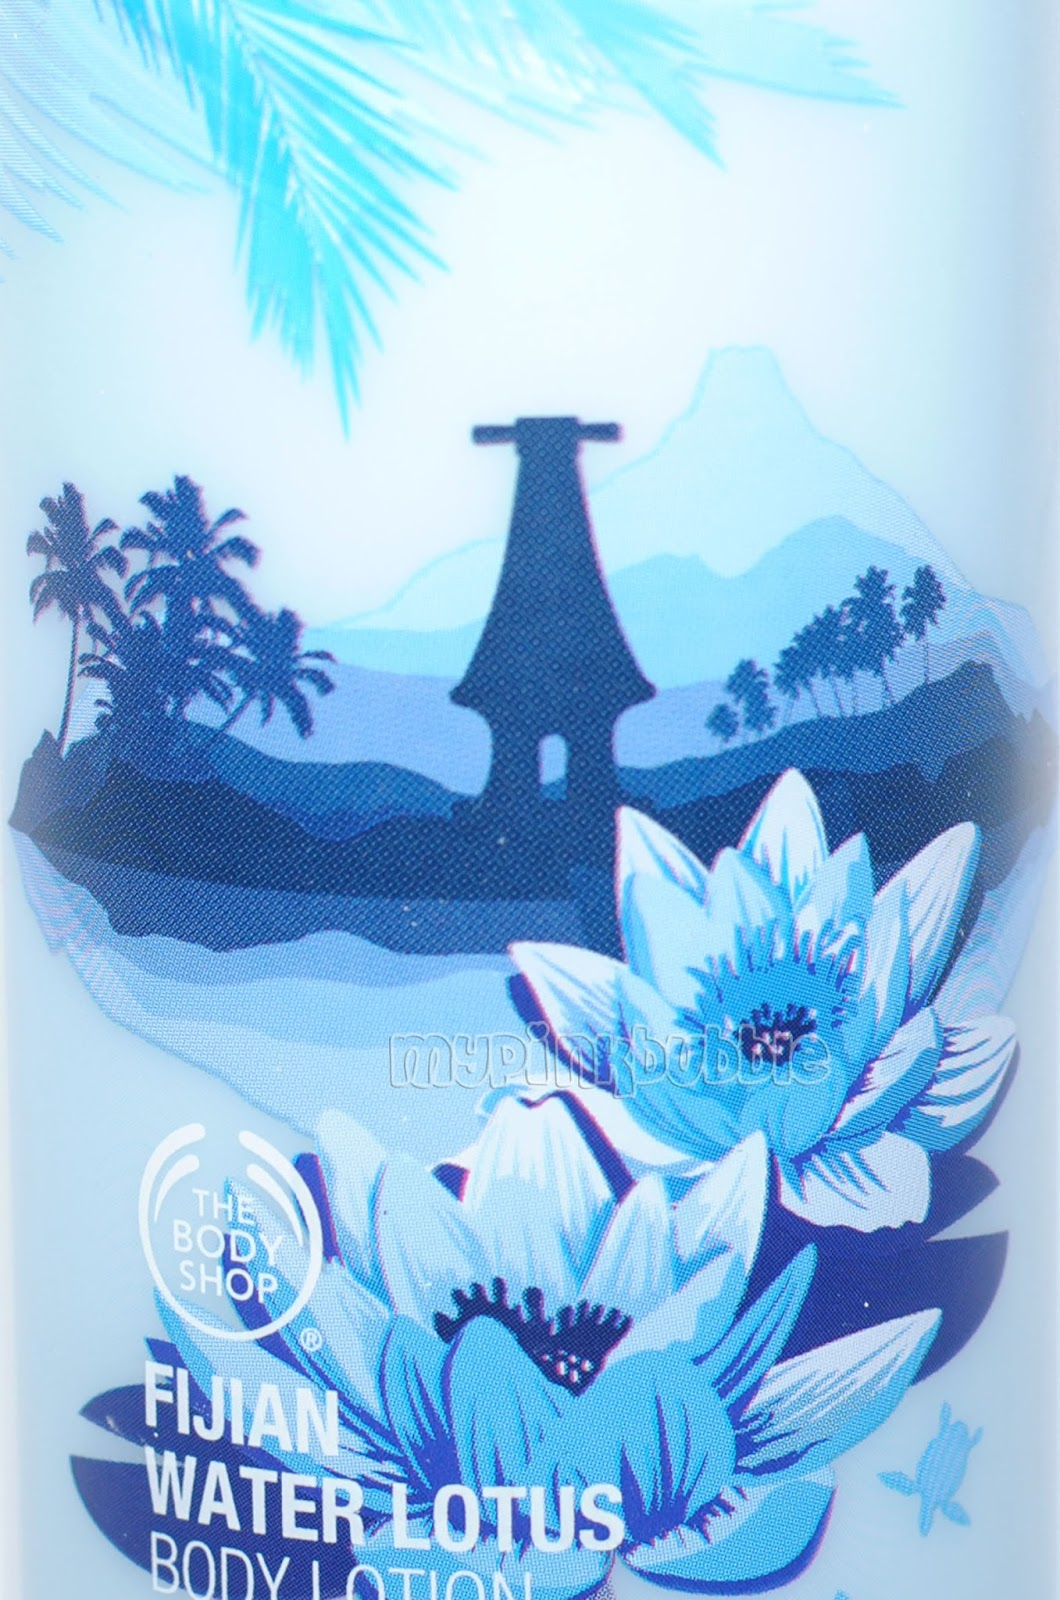 Fijian water lotus packaging